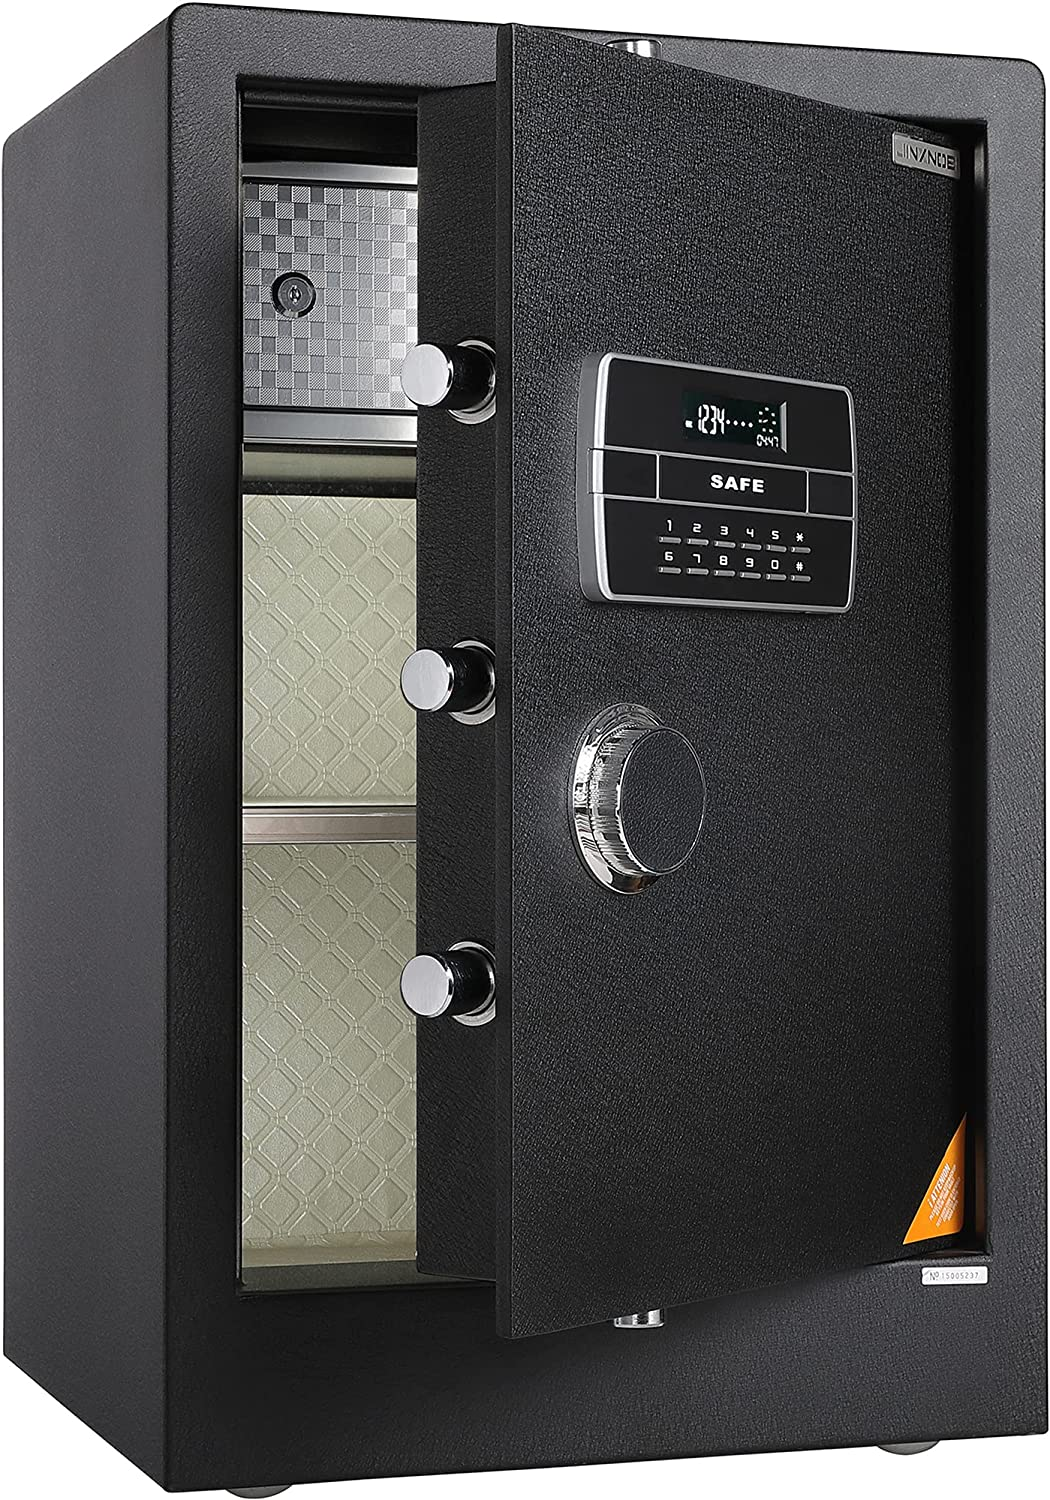 JINXNOBI Deluex Large Security Safes for Home, 2.84 Cubic Feet Digital Home Safe, Personal Password Safe Vault with Dial, Document Safety Box for Office, Hotel Safe for Jewelry, Guns, Documents